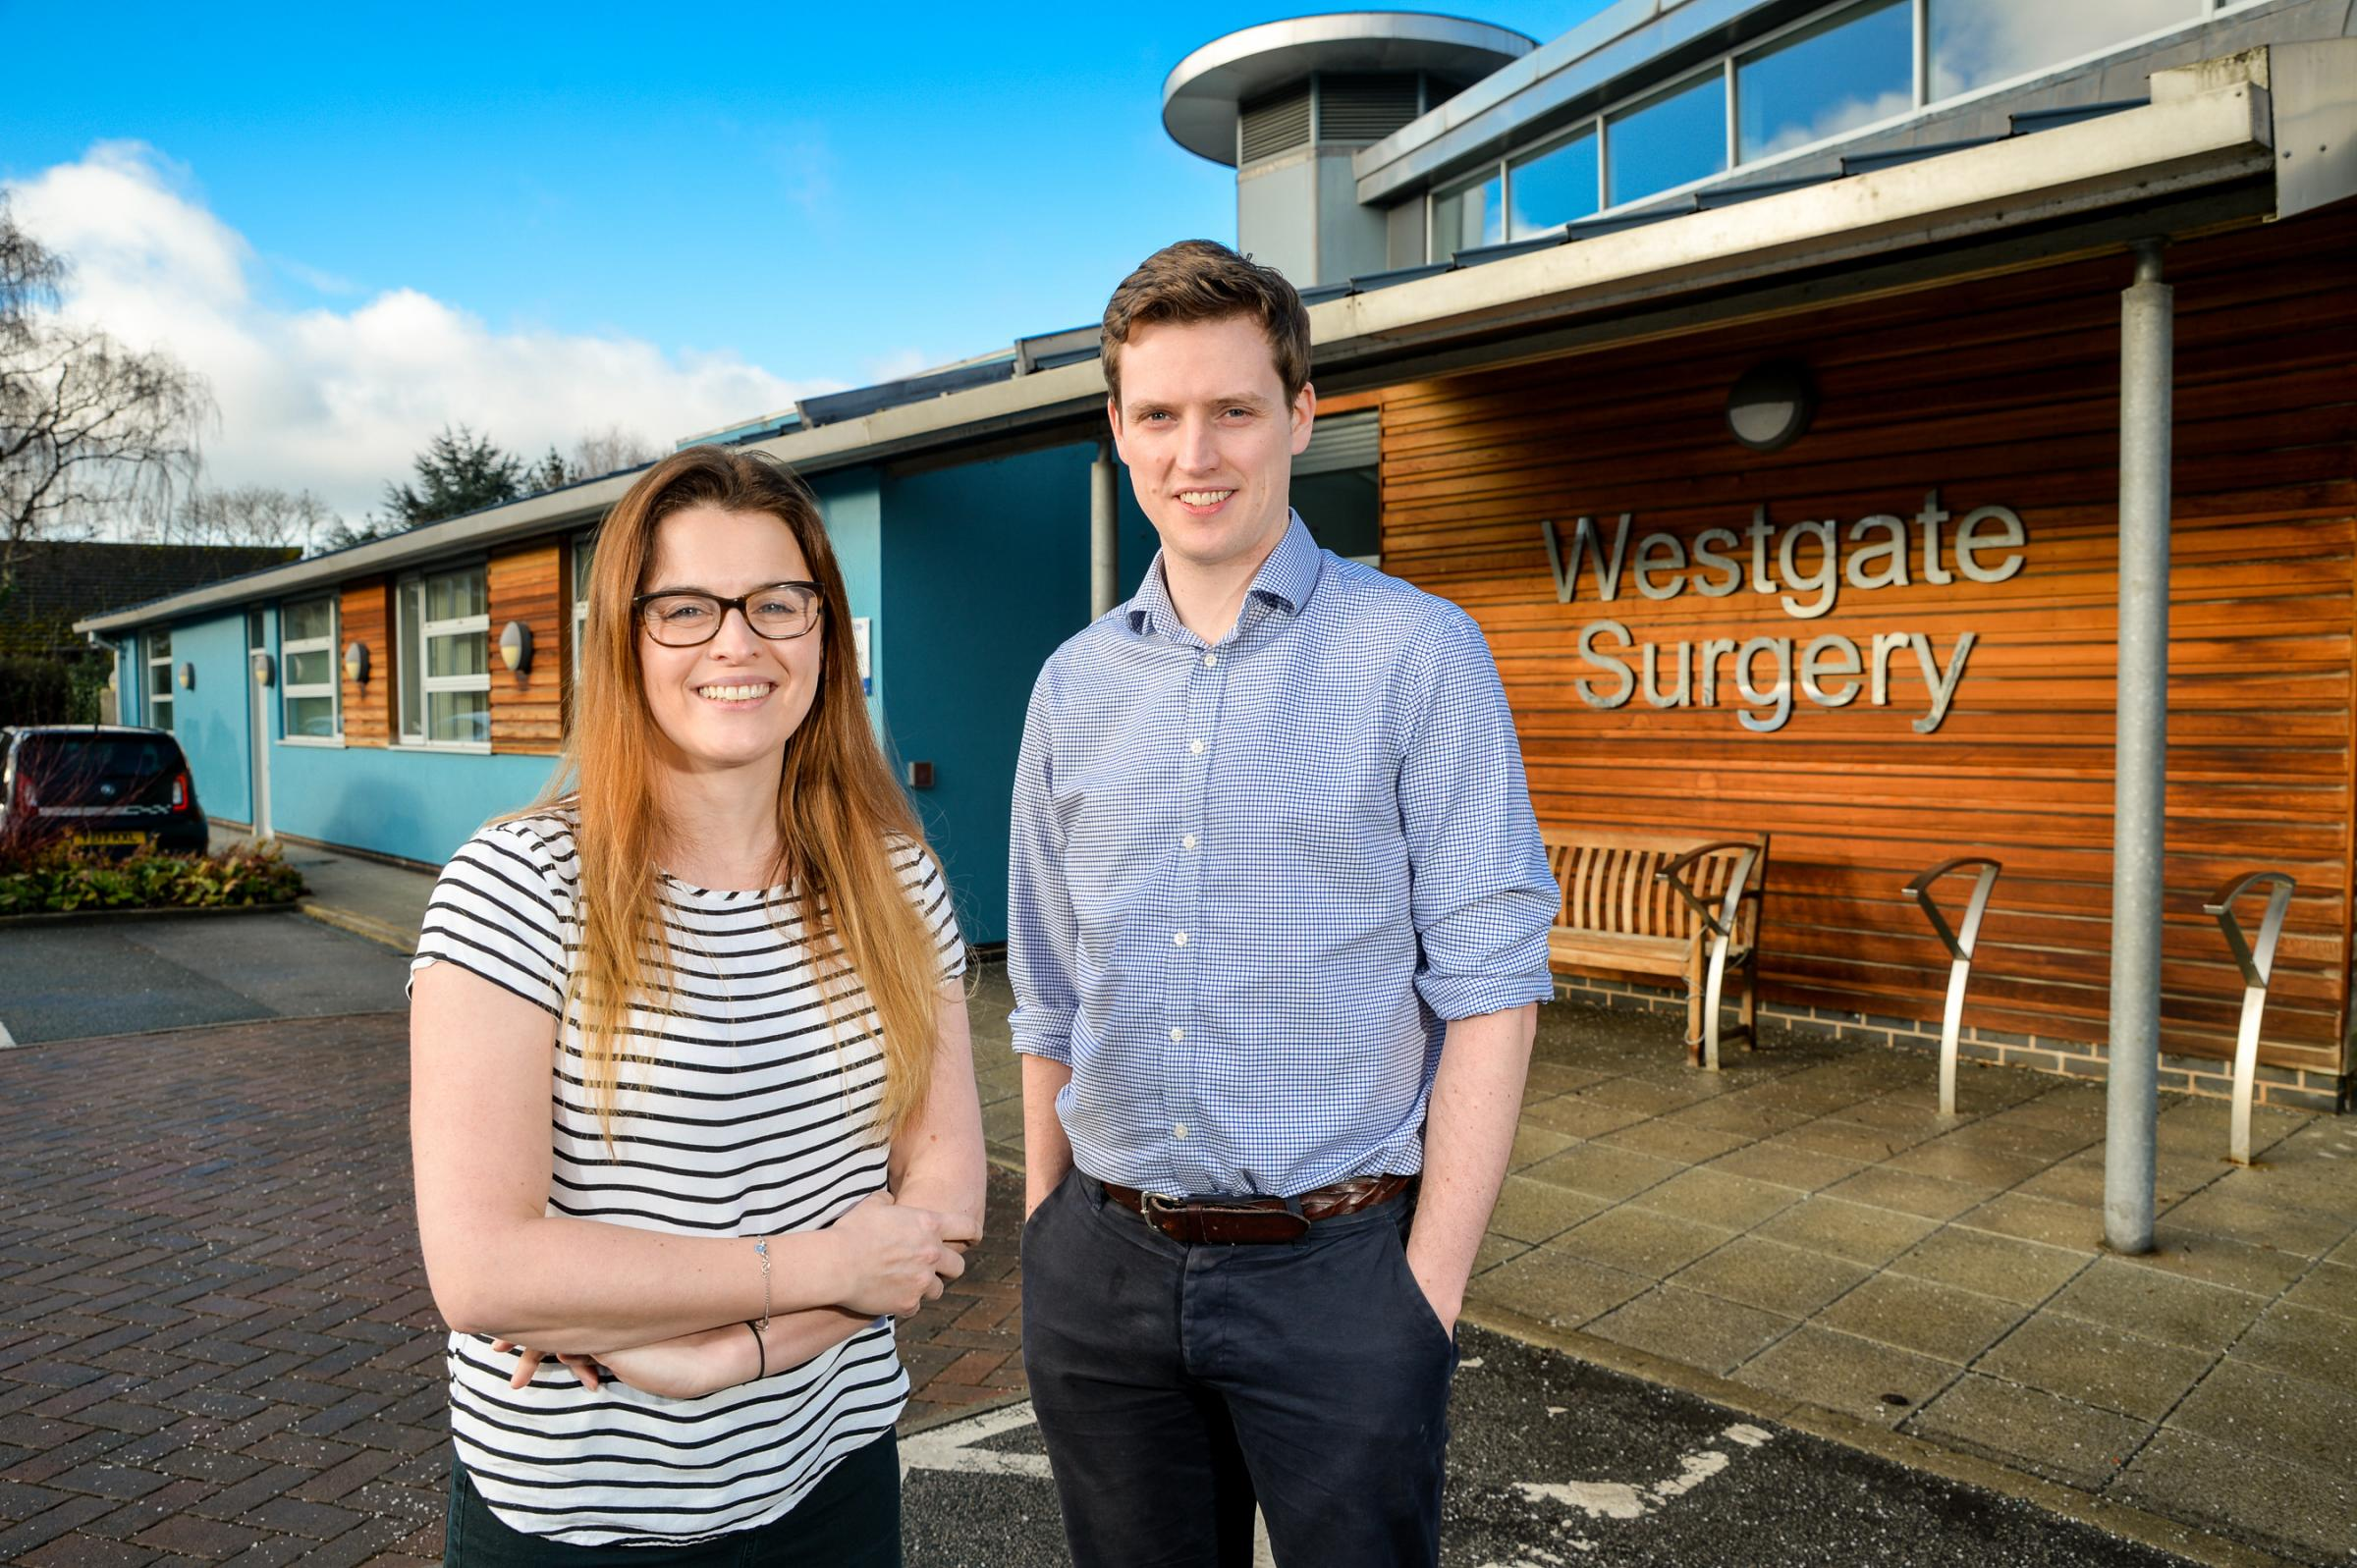 Doctors Laura McCarthy and Ben Hammersley at Westgate Surgery, Otley